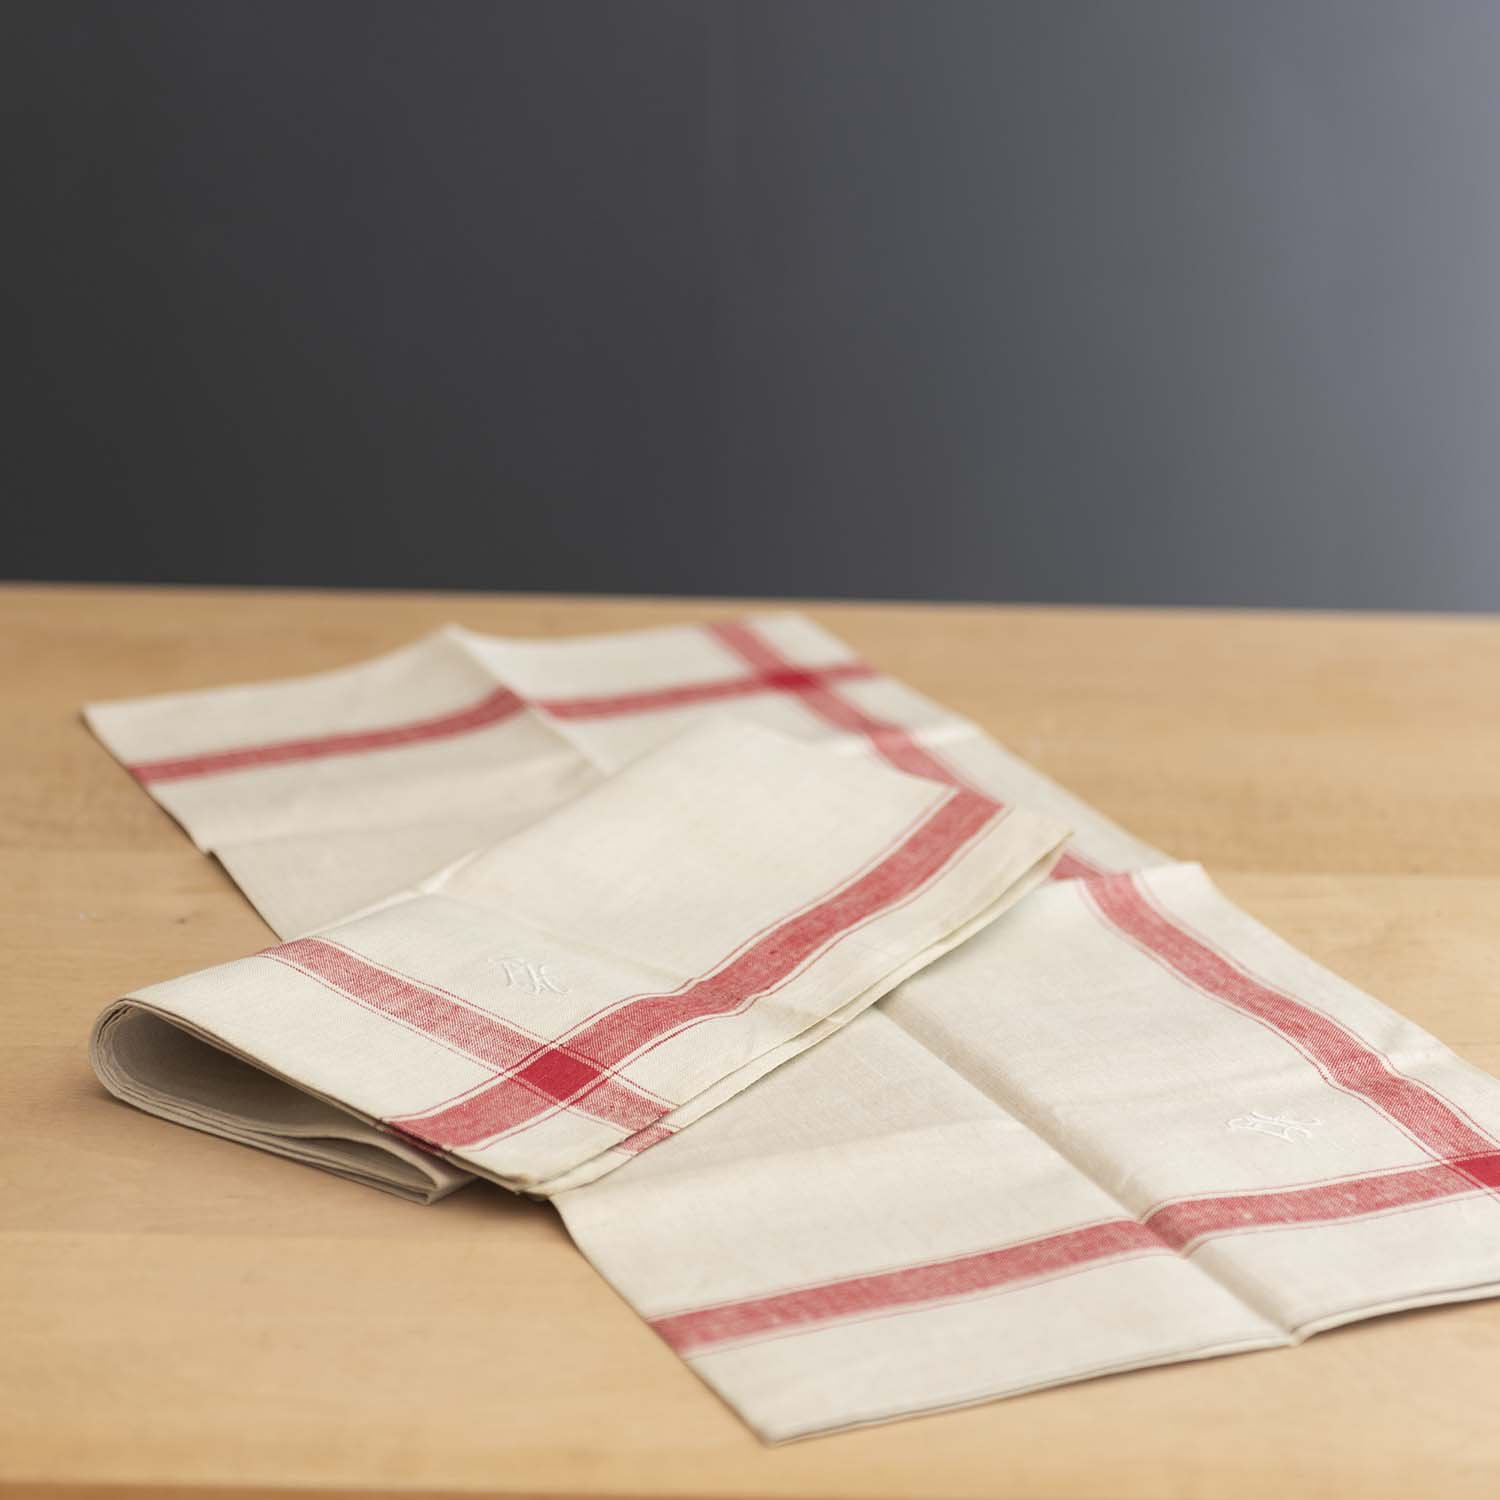 <img class='new_mark_img1' src='https://img.shop-pro.jp/img/new/icons3.gif' style='border:none;display:inline;margin:0px;padding:0px;width:auto;' />Vintage Linen Kitchen Towel